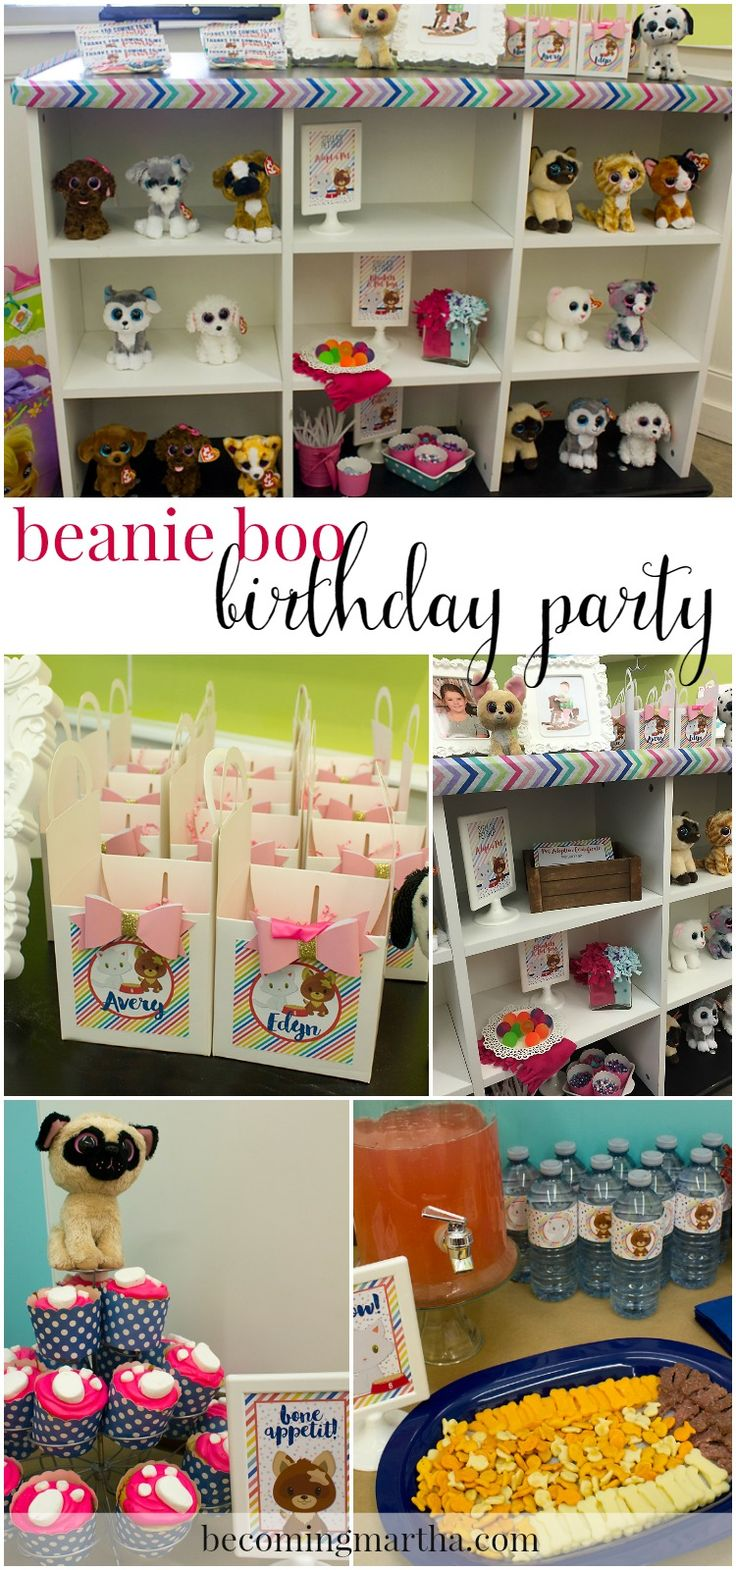 This Beanie Boo Birthday Party was one of the easiest and simplest parties I've ever thrown - and holding it at a venue like Michaels (@michaelsstores) made it really stress free but allowed me to be as creative as I wanted!